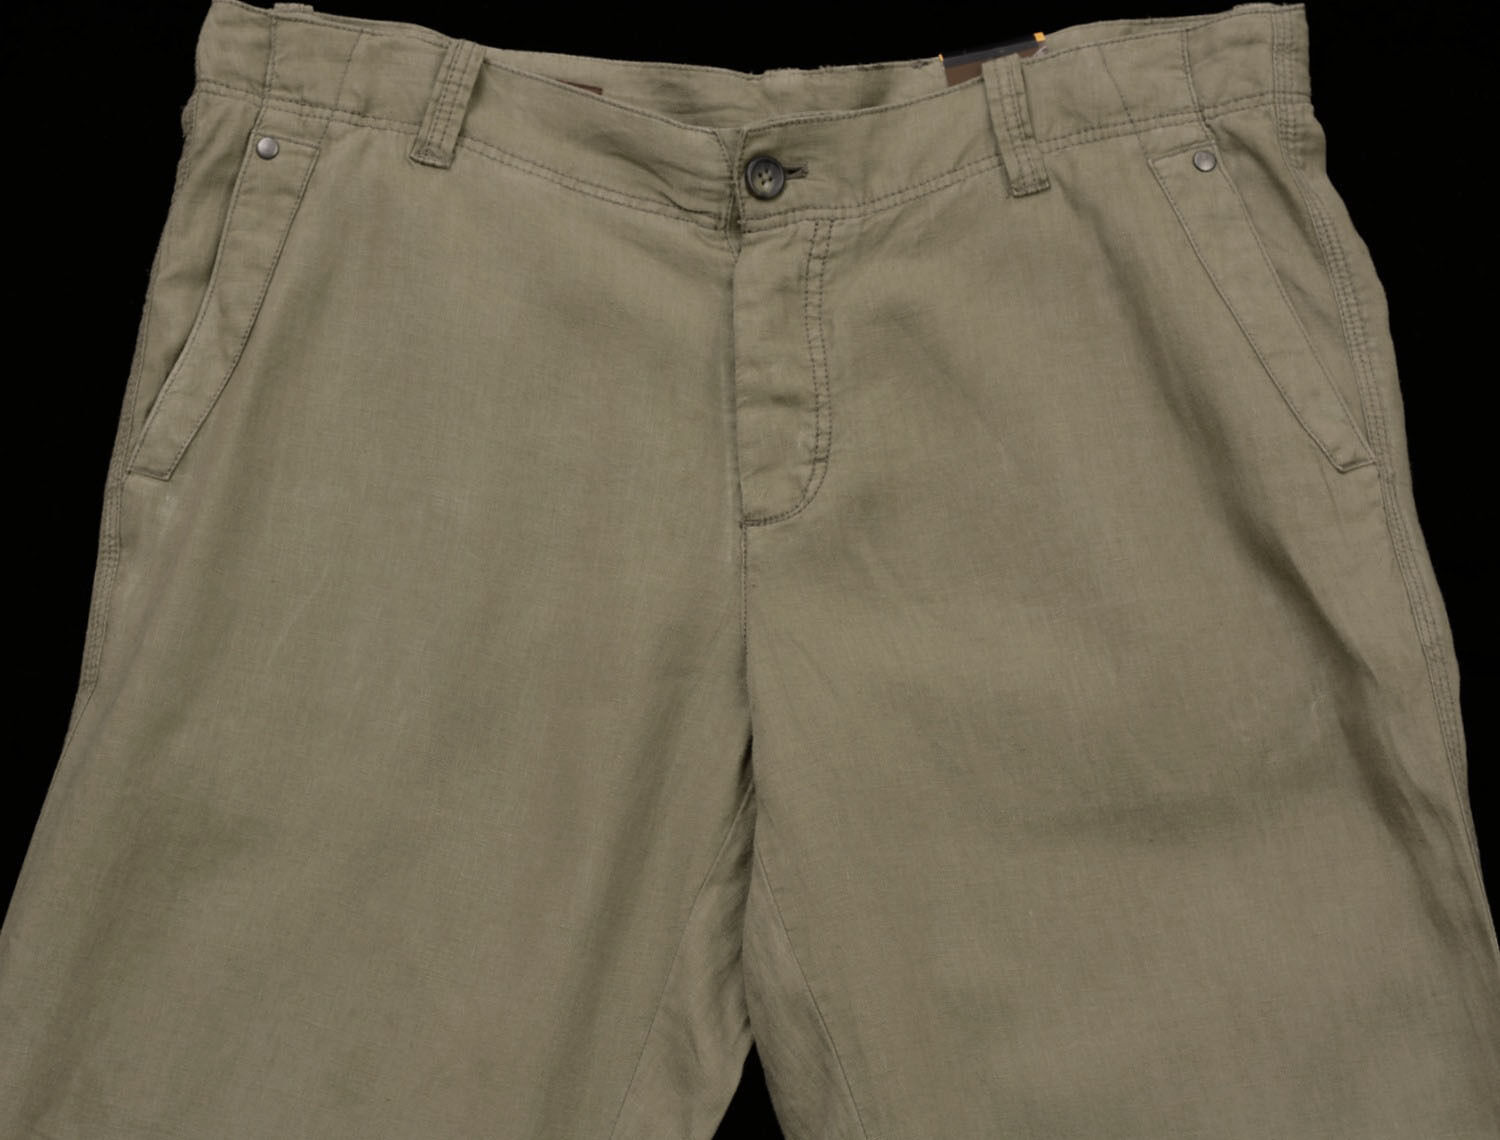 Men's PERRY ELLIS Dark Taupe   Olive Linen Pants Tagged 40x32 40 NEW NWT Nice